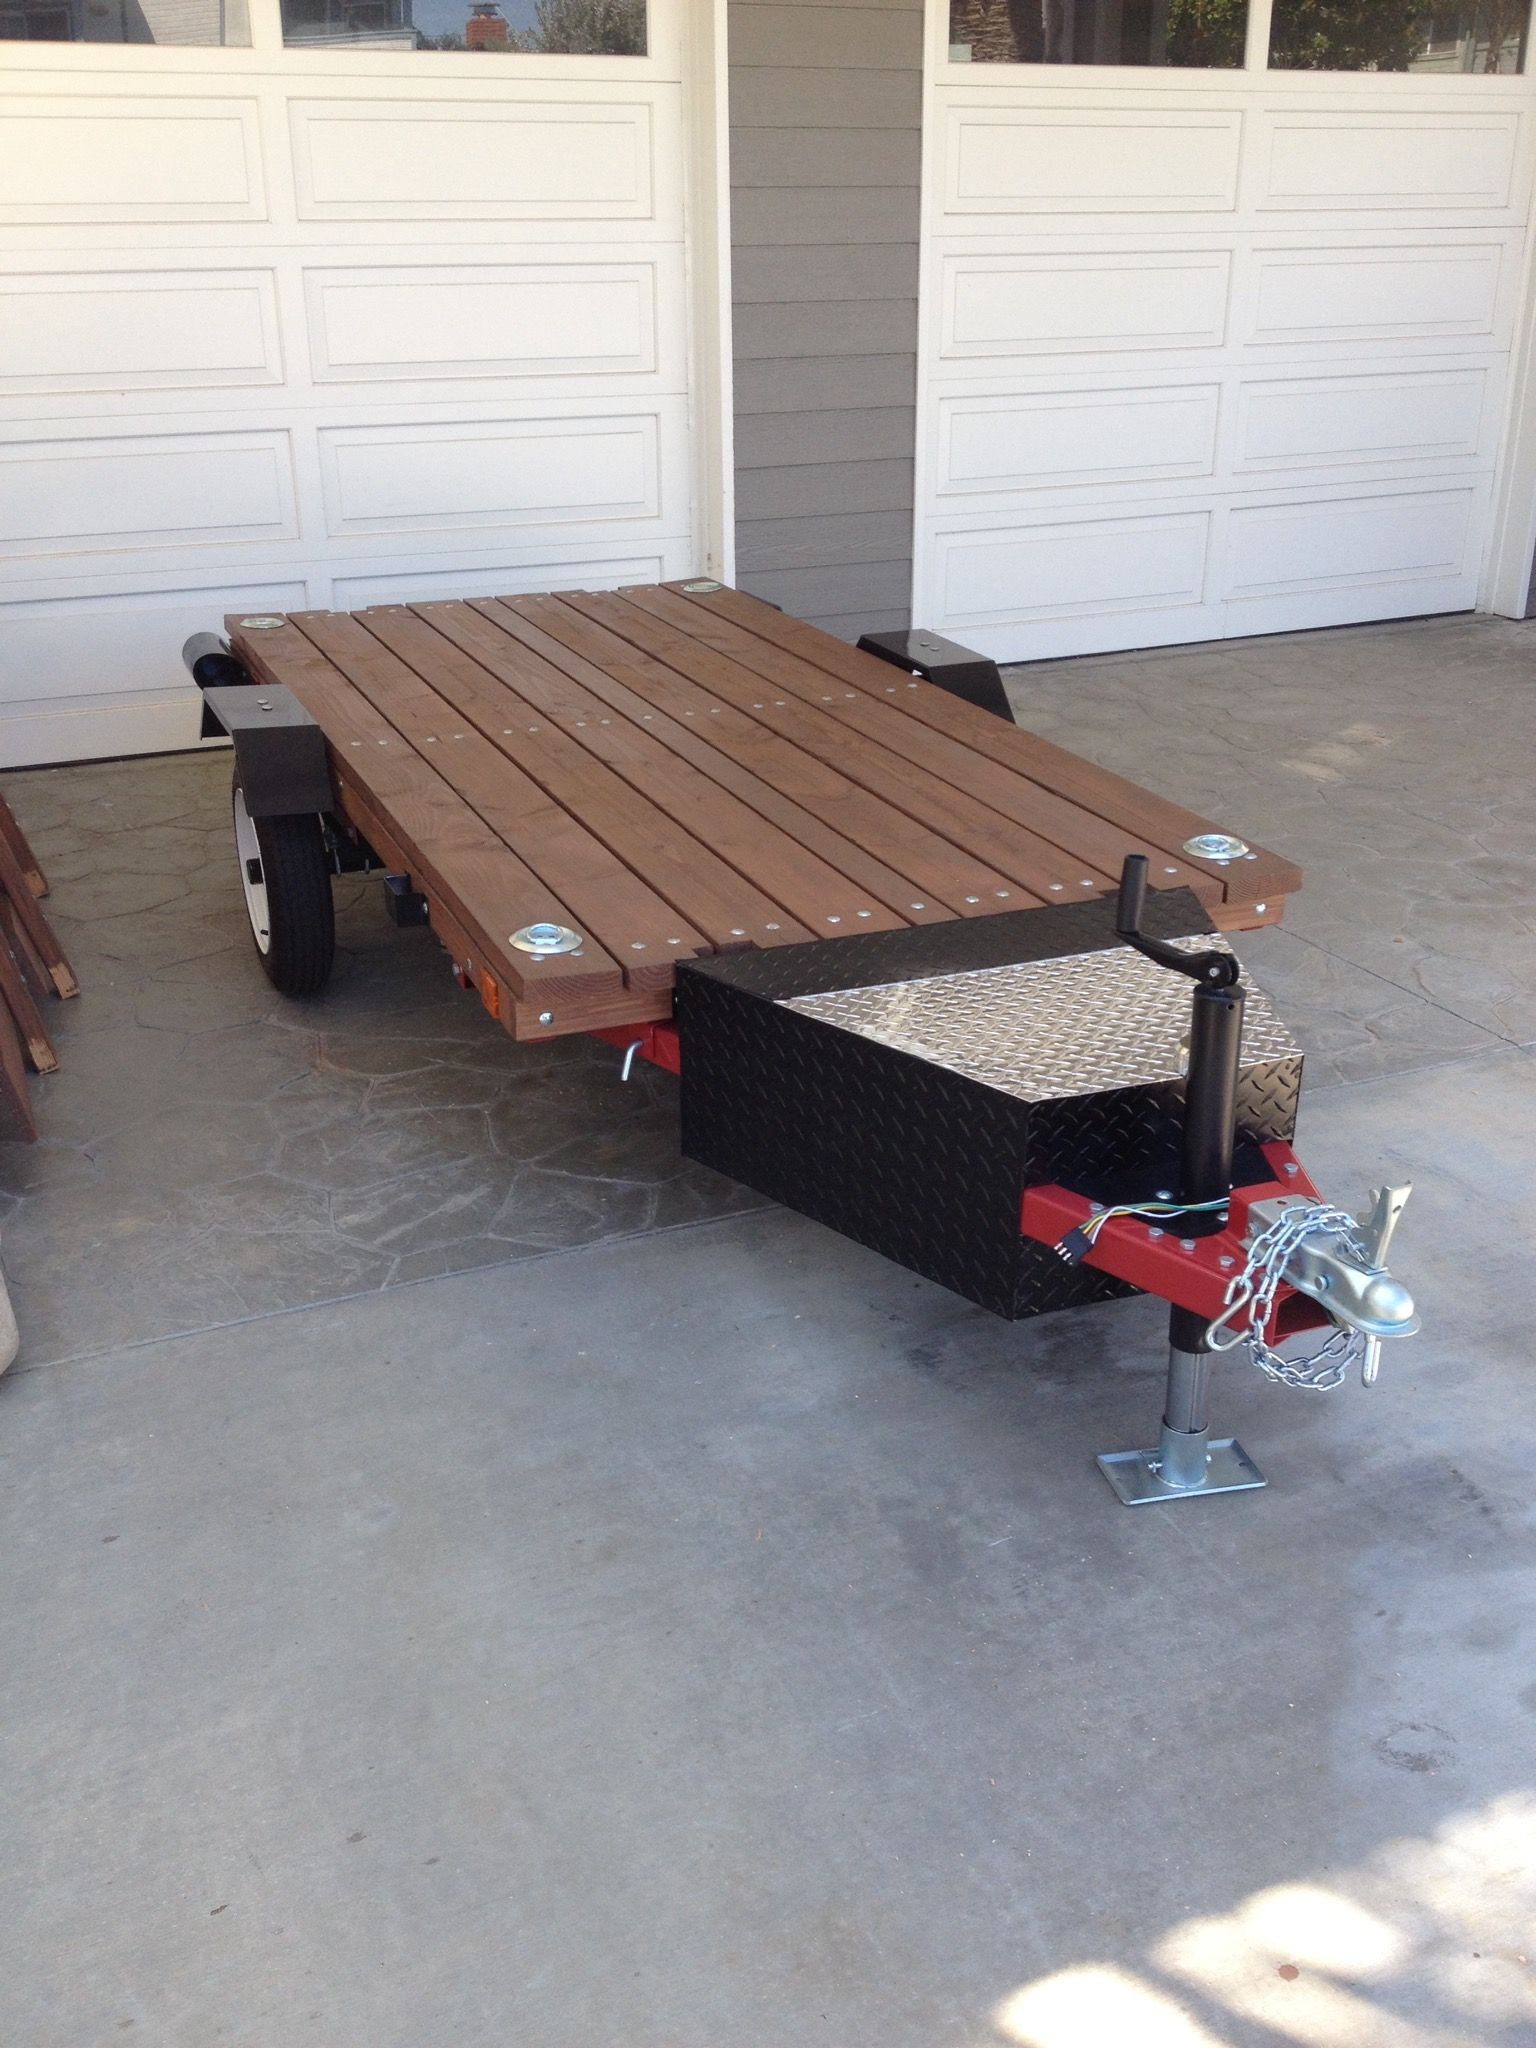 Utility Trailer For Sale So Cal Orange County Craigslist Utility Trailer Utility Trailers For Sale Trailers For Sale